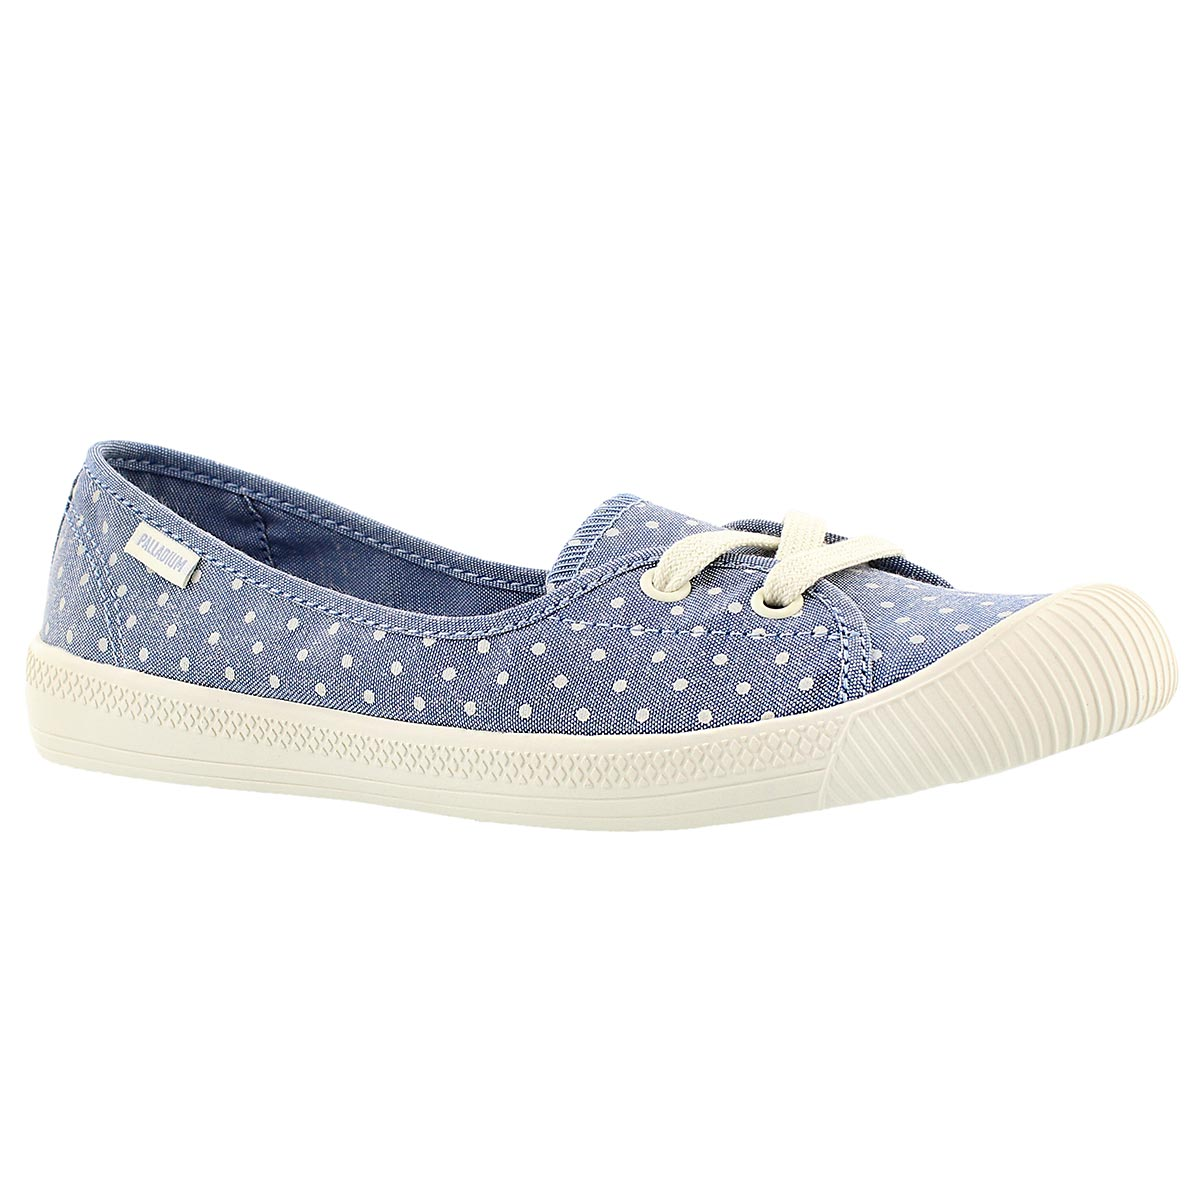 Women's FLEX BALLET blue/white dots sneakers